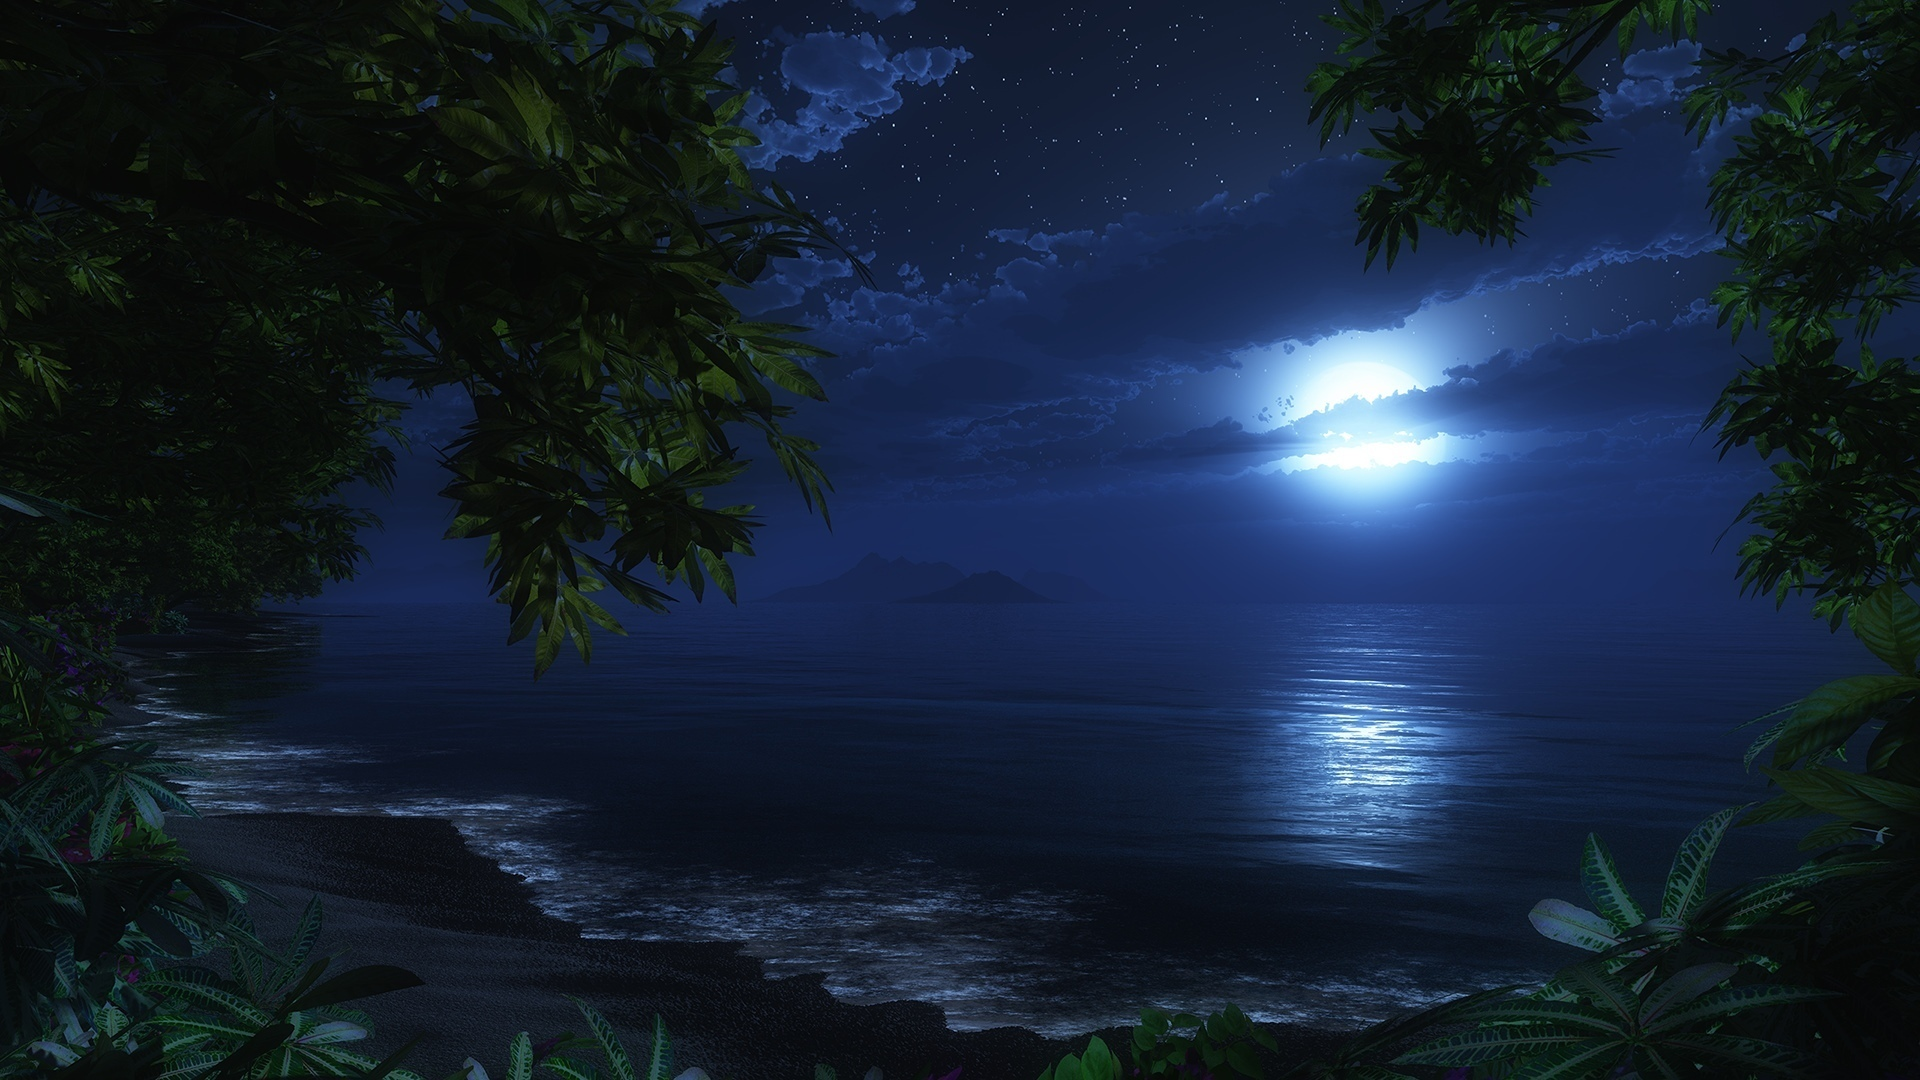 nature ocean beaches waves sky night trees tropical jungle wallpaper 1920x1080